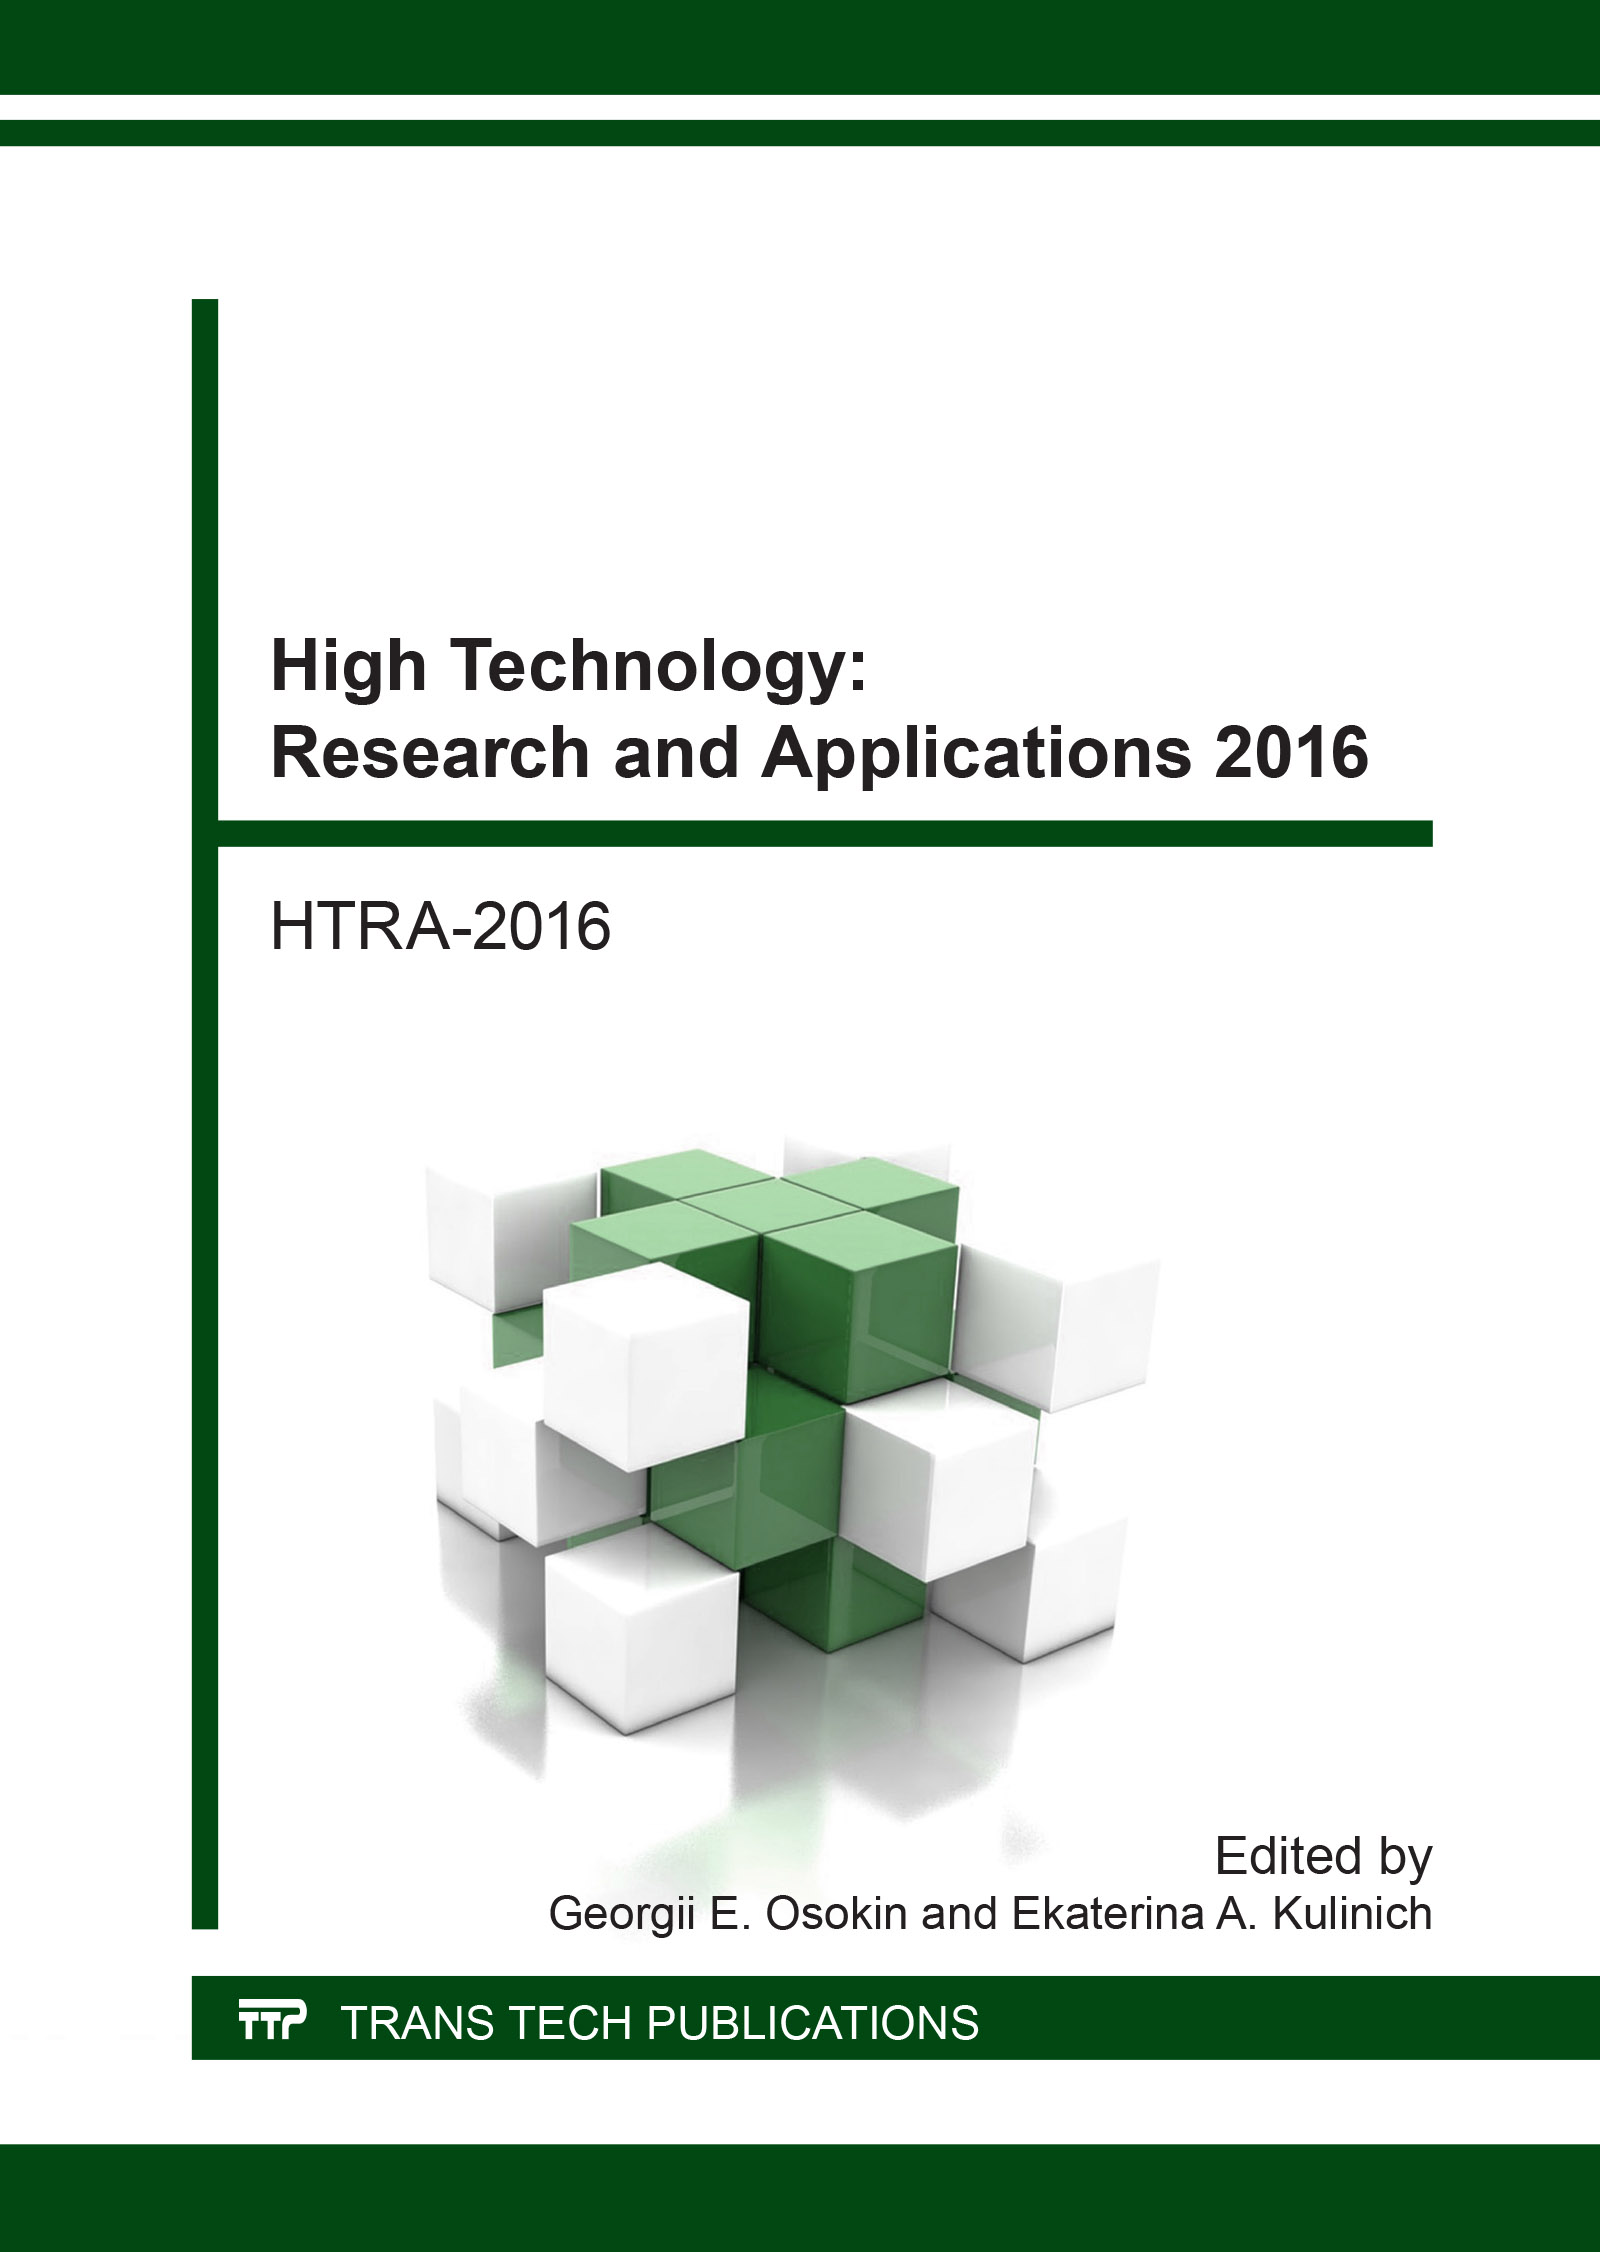 High Technology: Research and Applications 2016